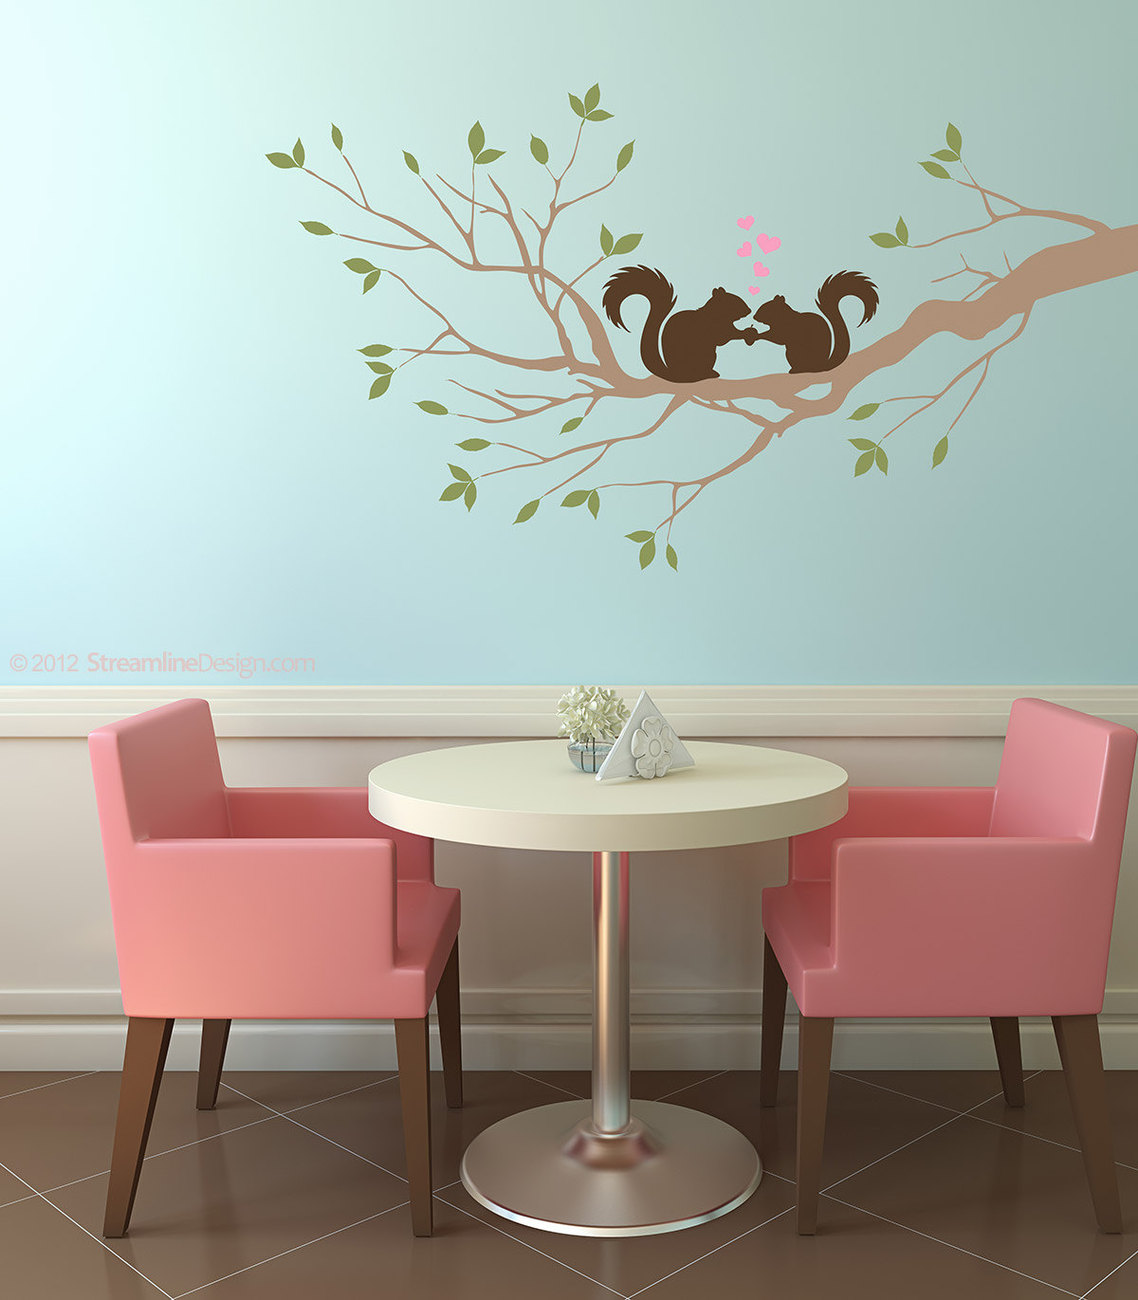 Squirrels In Love on Tree Branch Vinyl Wall Graphic Decor